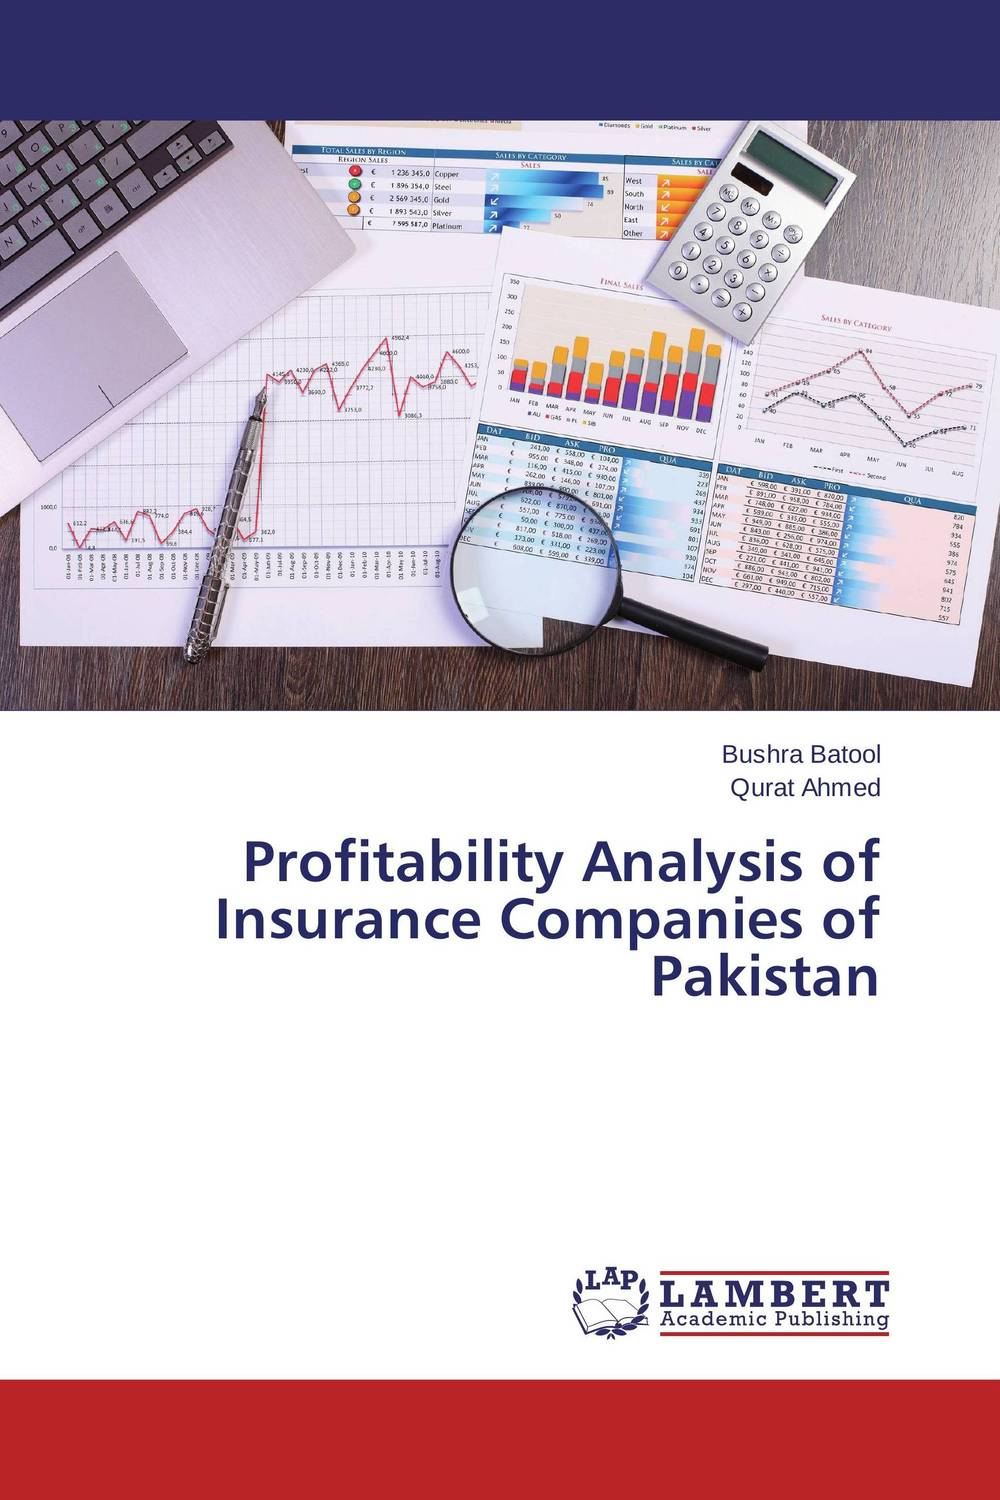 Profitability Analysis of Insurance Companies of Pakistan tony boobier analytics for insurance the real business of big data